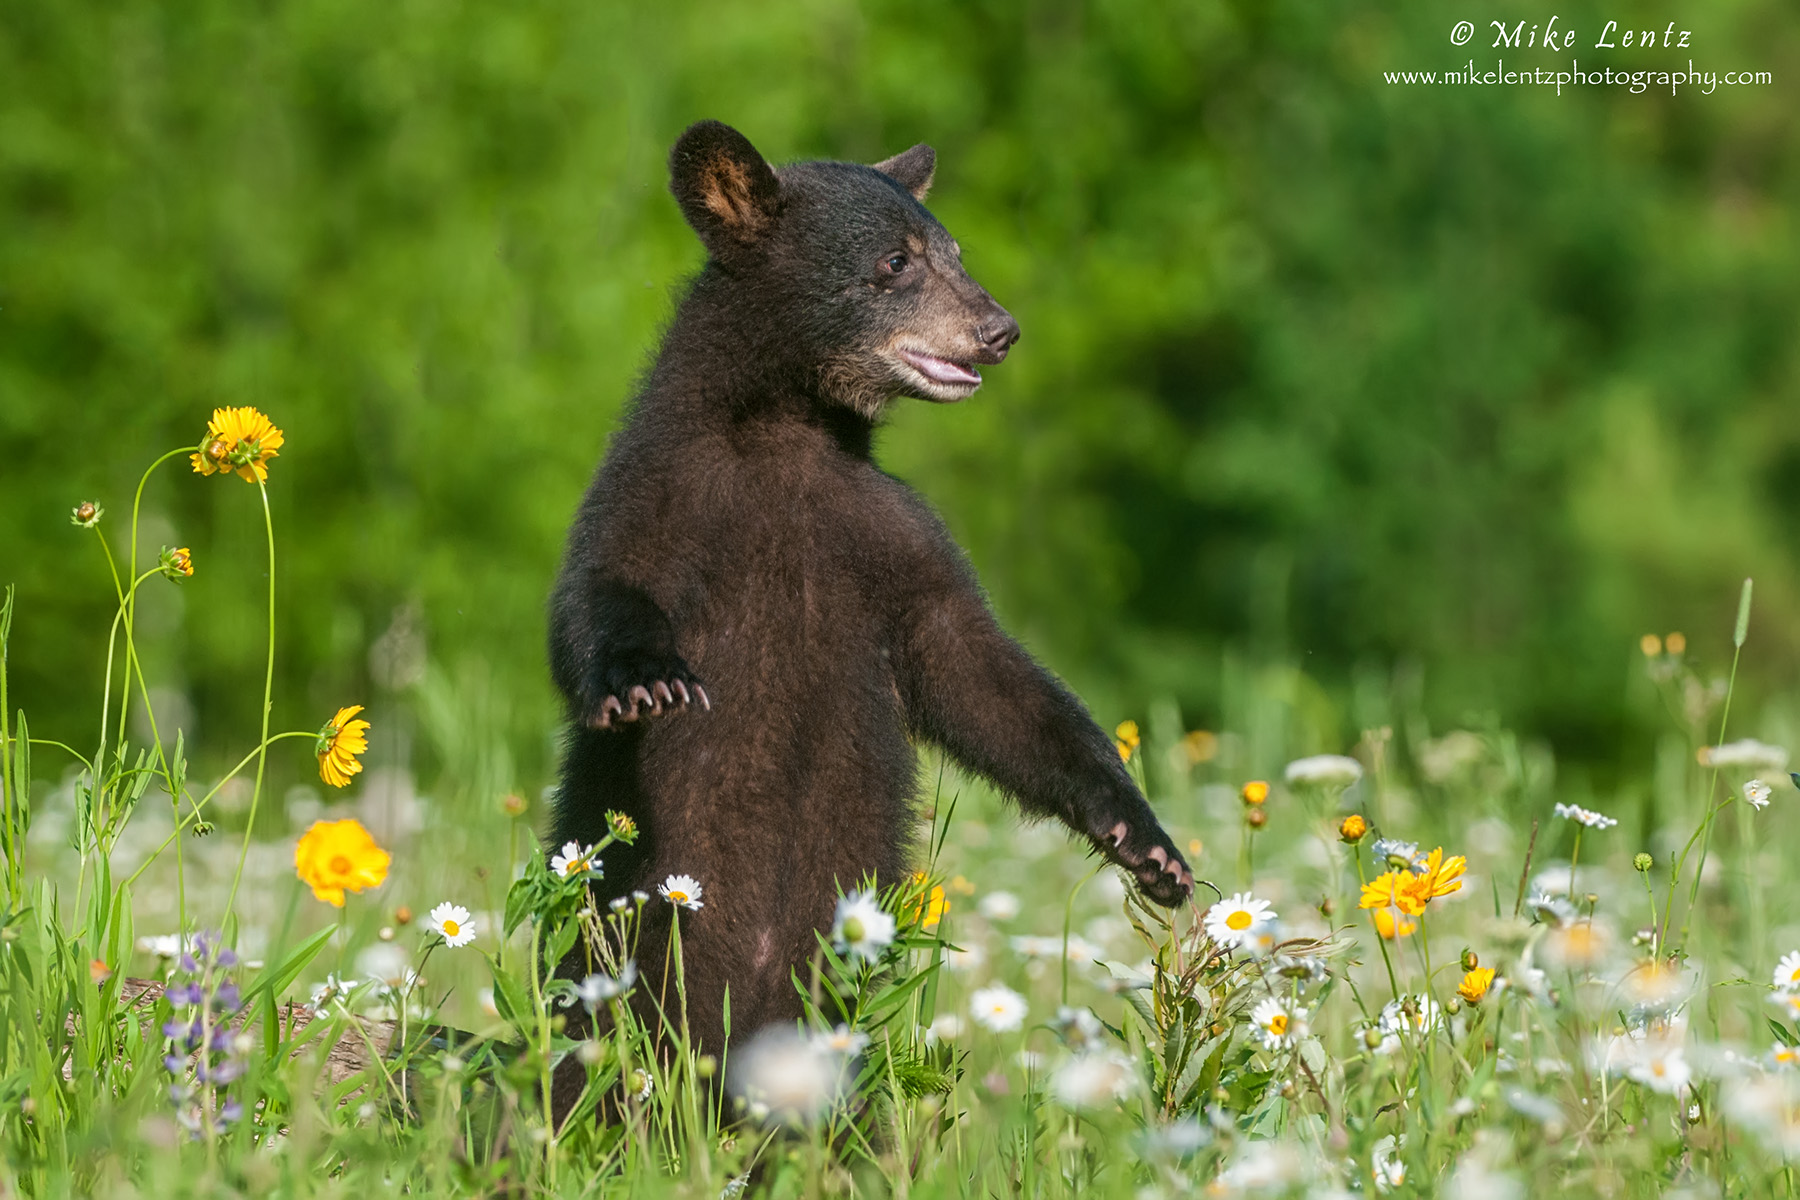 Bear cub upright in flowers